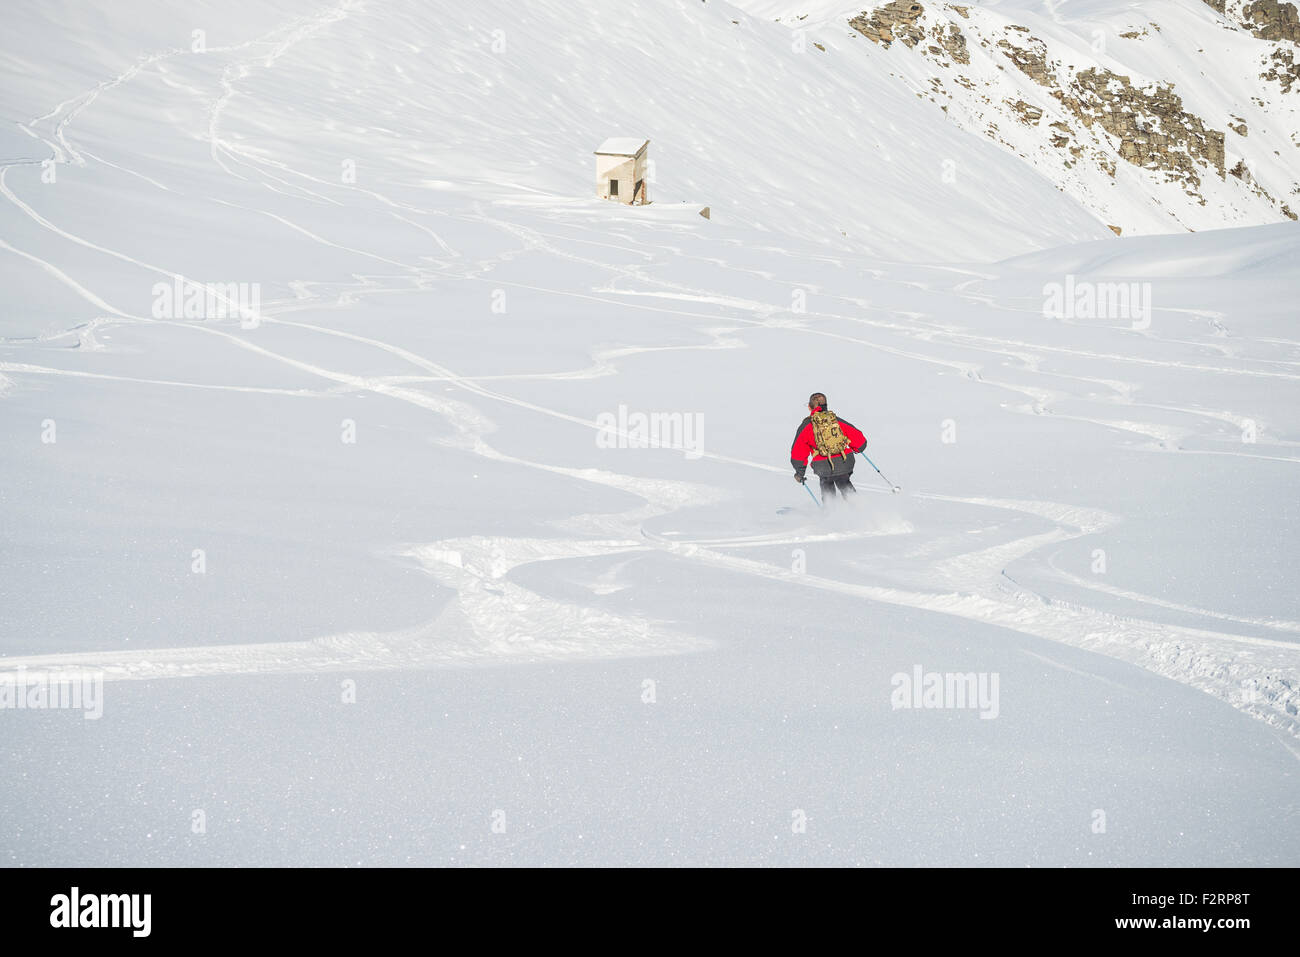 One person skiing downhills off piste on snowy slope in the italian Alps, with bright sunny day of winter season. Stock Photo